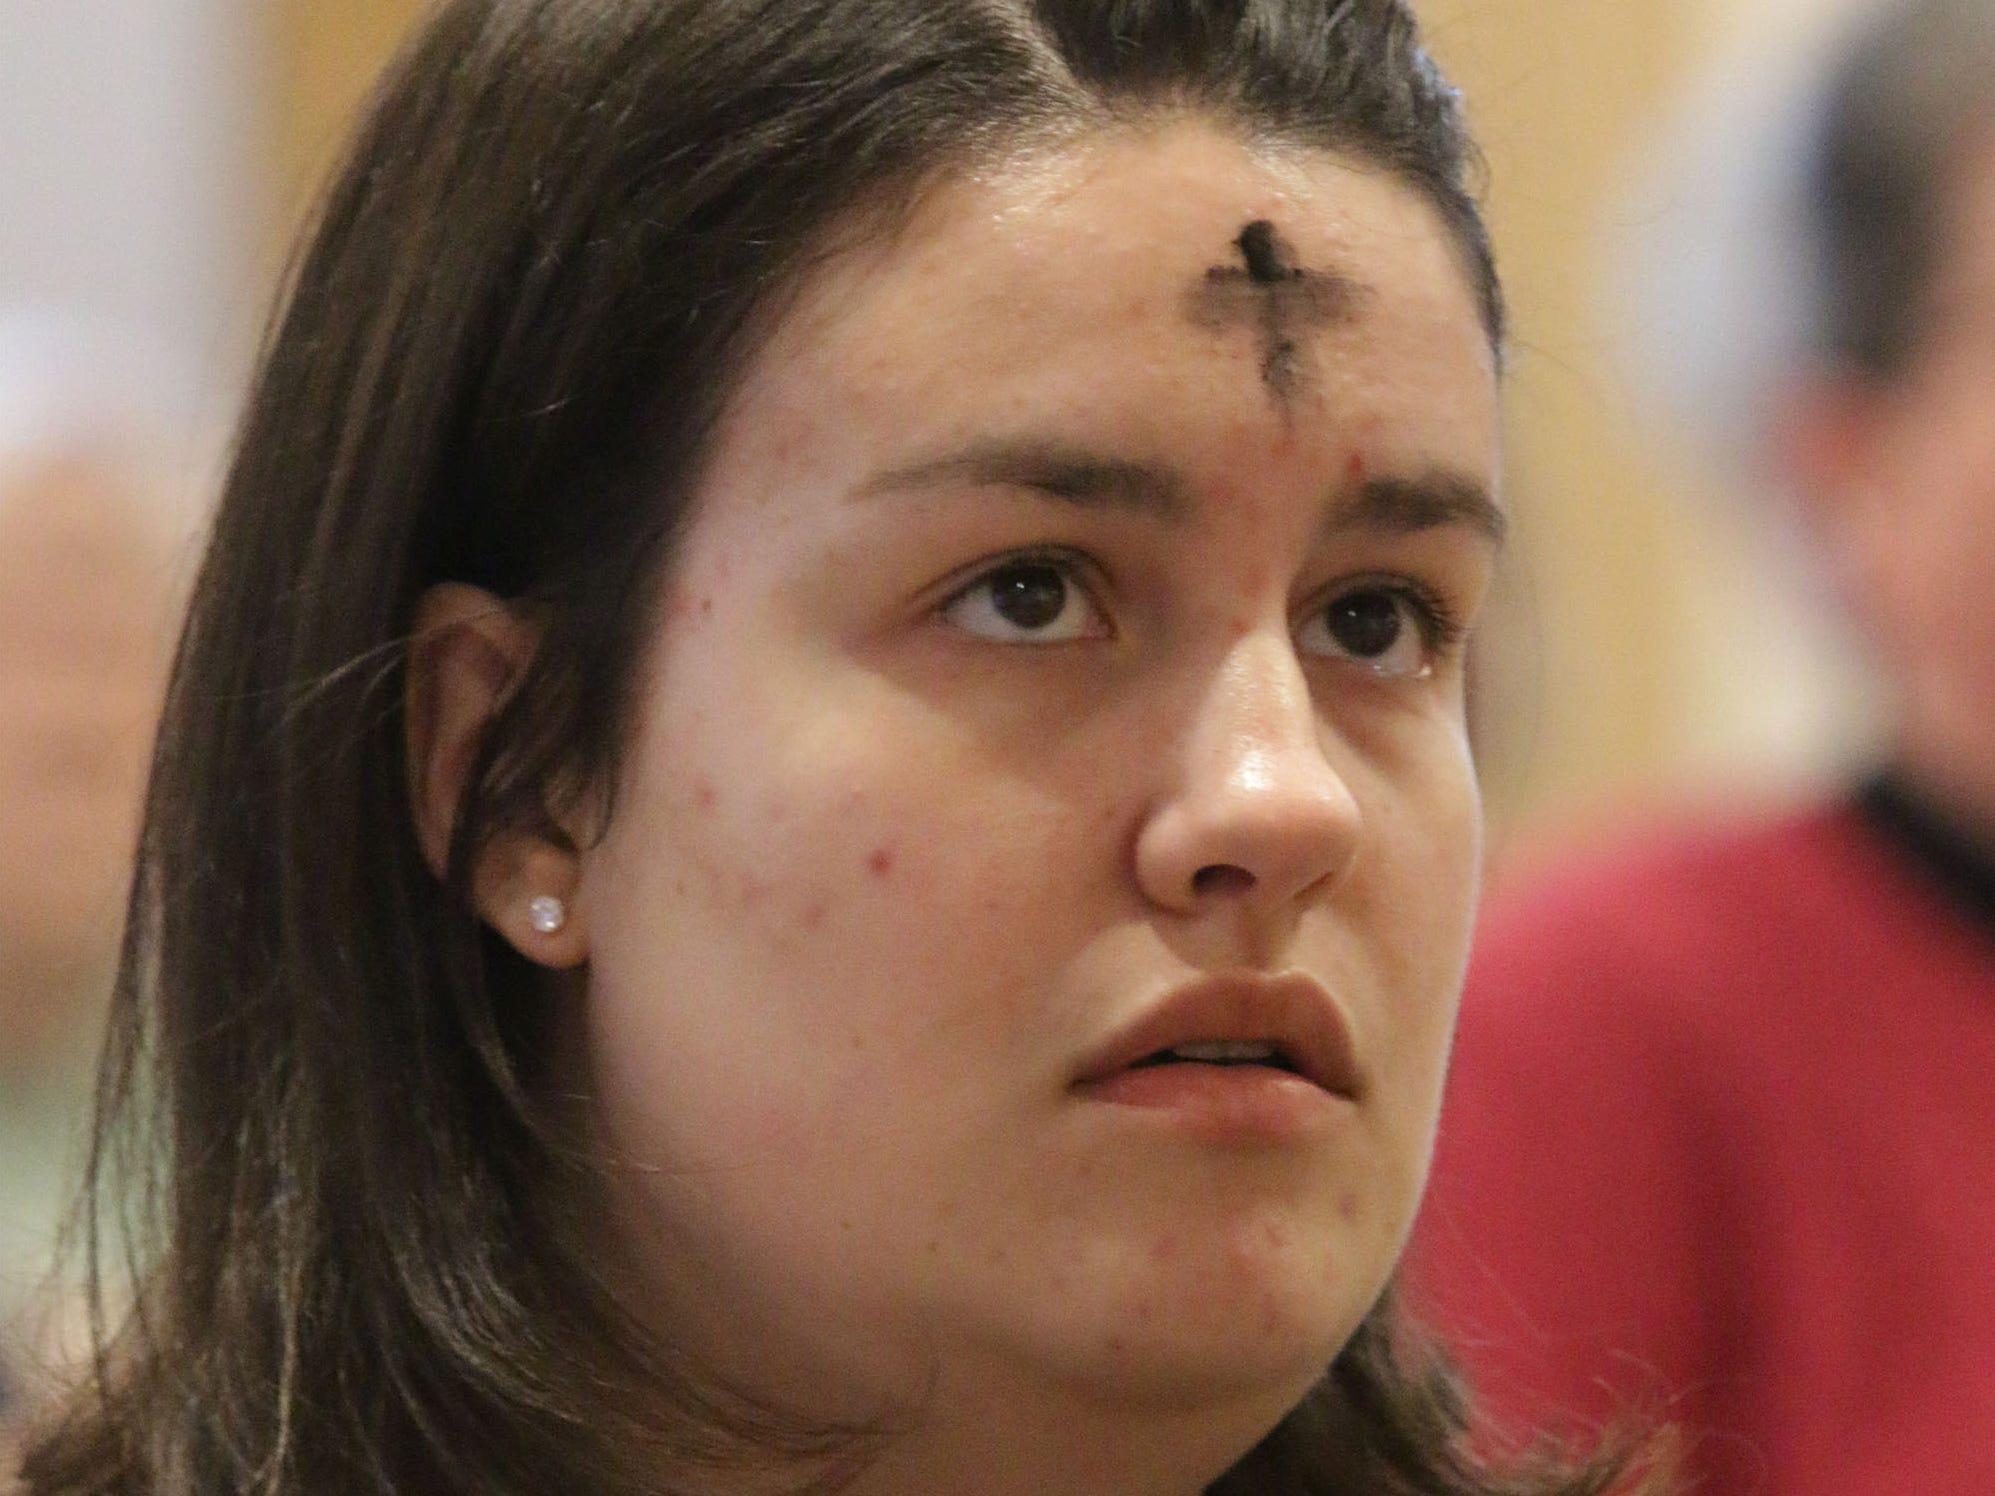 Elena Kieckhafer wears ashes during Ash Wednesday service at First United Lutheran Church, Wednesday, March 6, 2019, in Sheboygan, Wis.